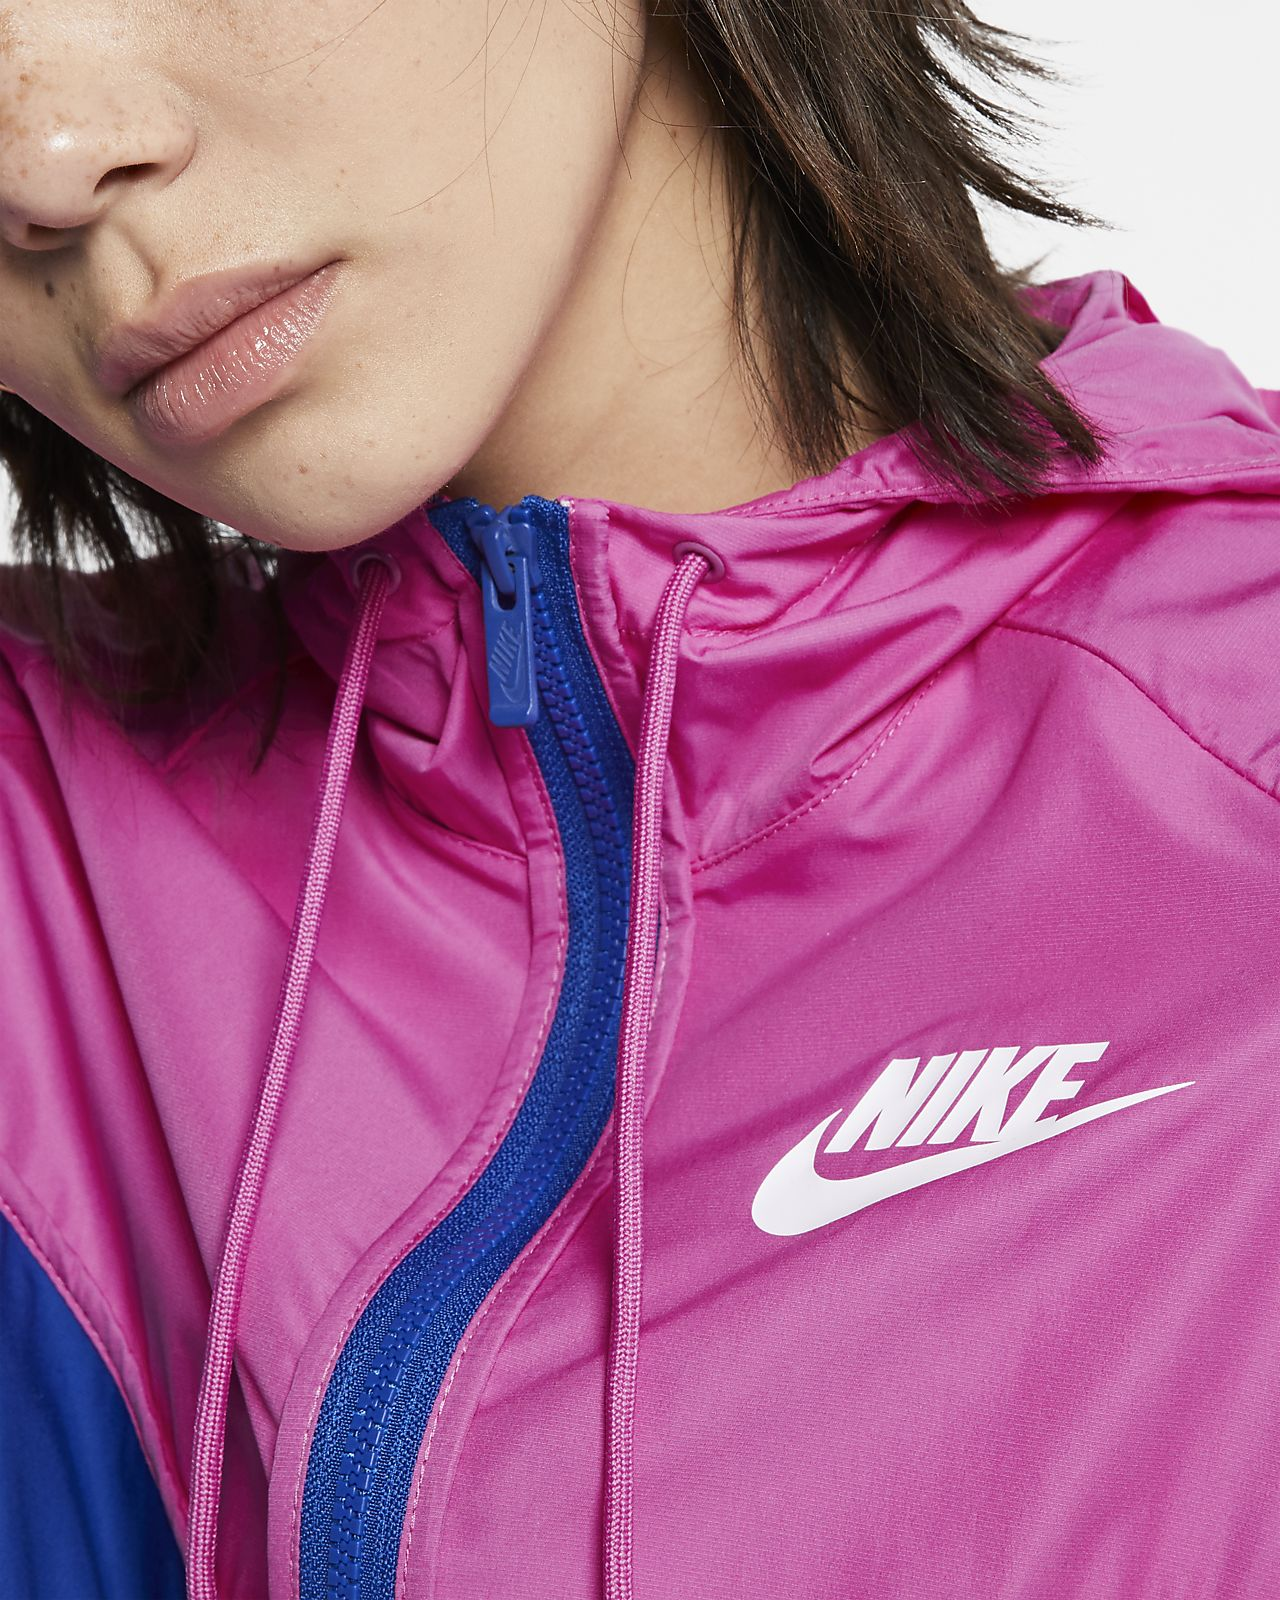 b1dc0f6250a6 Low Resolution Nike Sportswear Windrunner Women s Woven Windbreaker Nike  Sportswear Windrunner Women s Woven Windbreaker